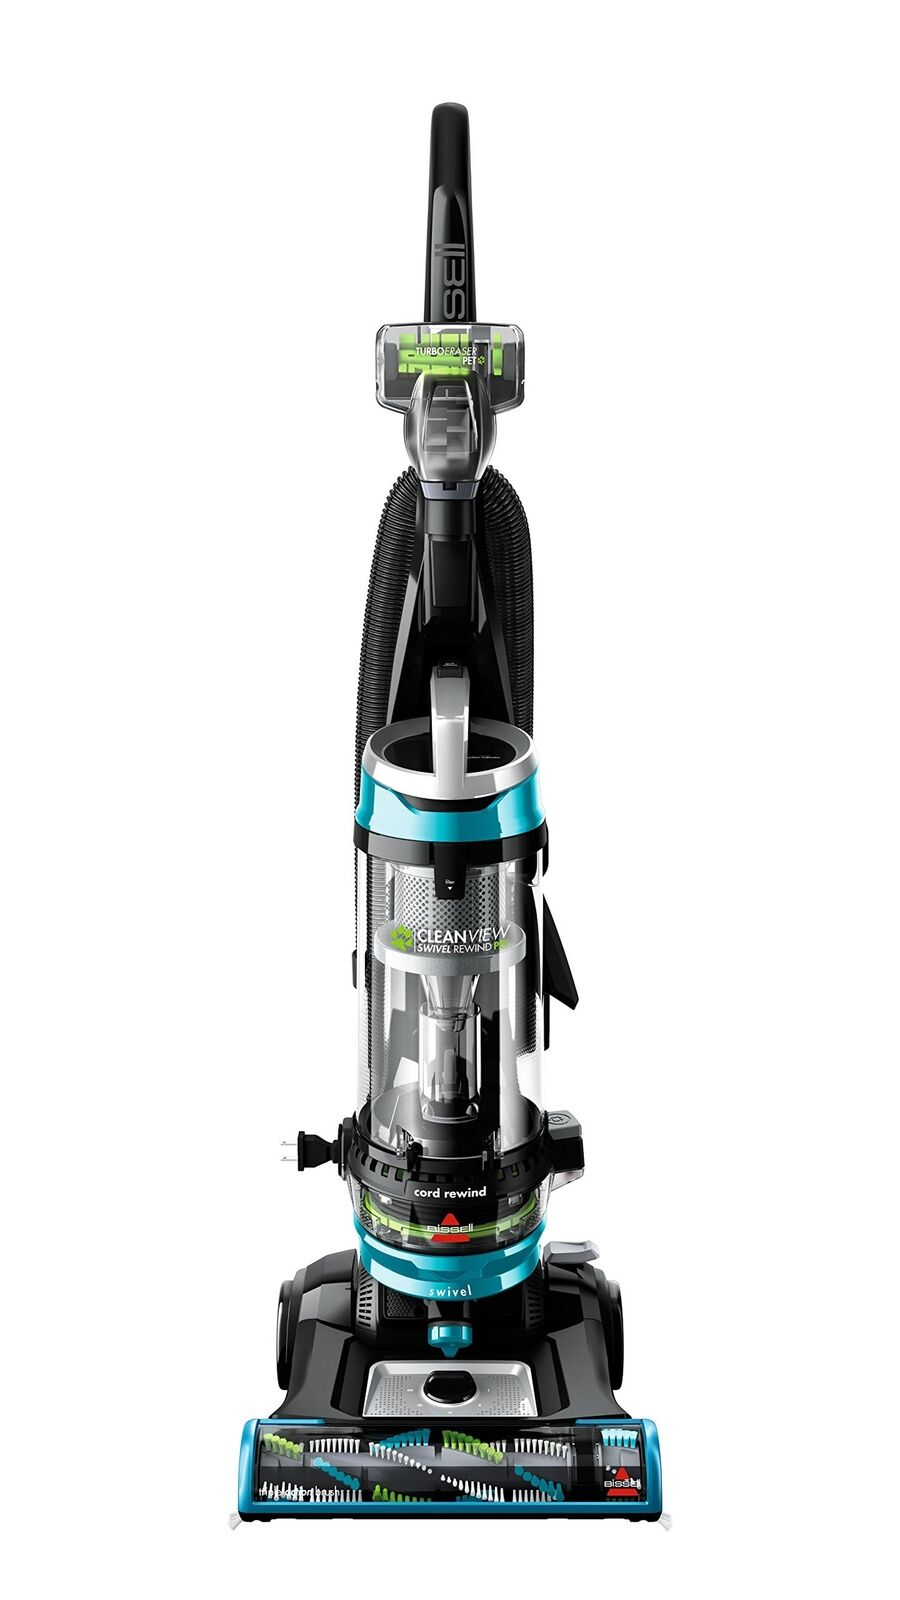 BISSELL Cleanview Swivel Rewind Pet Upright Bagless Vacuum Cleaner Teal